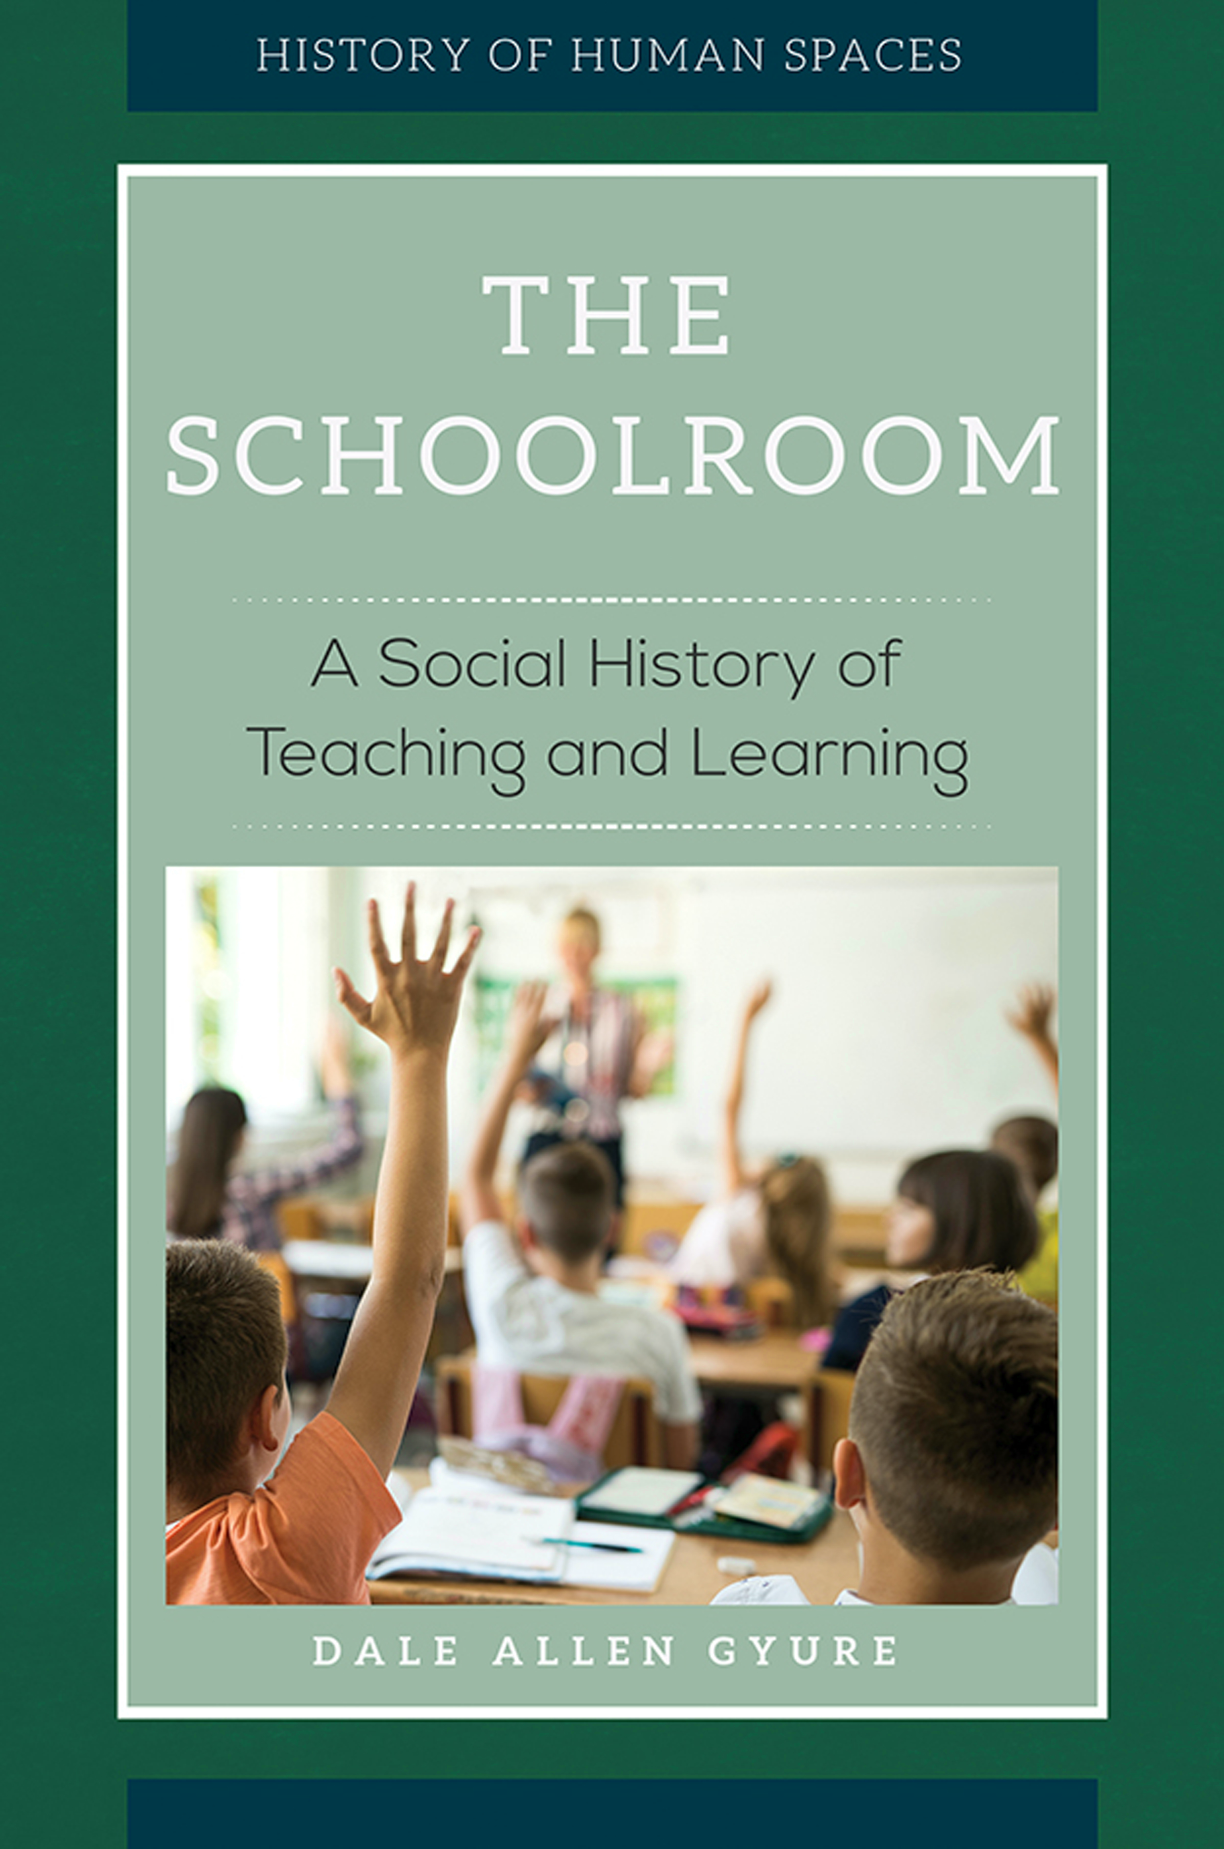 The schoolroom : a social history of teaching and learning by Dale Allen Gyure